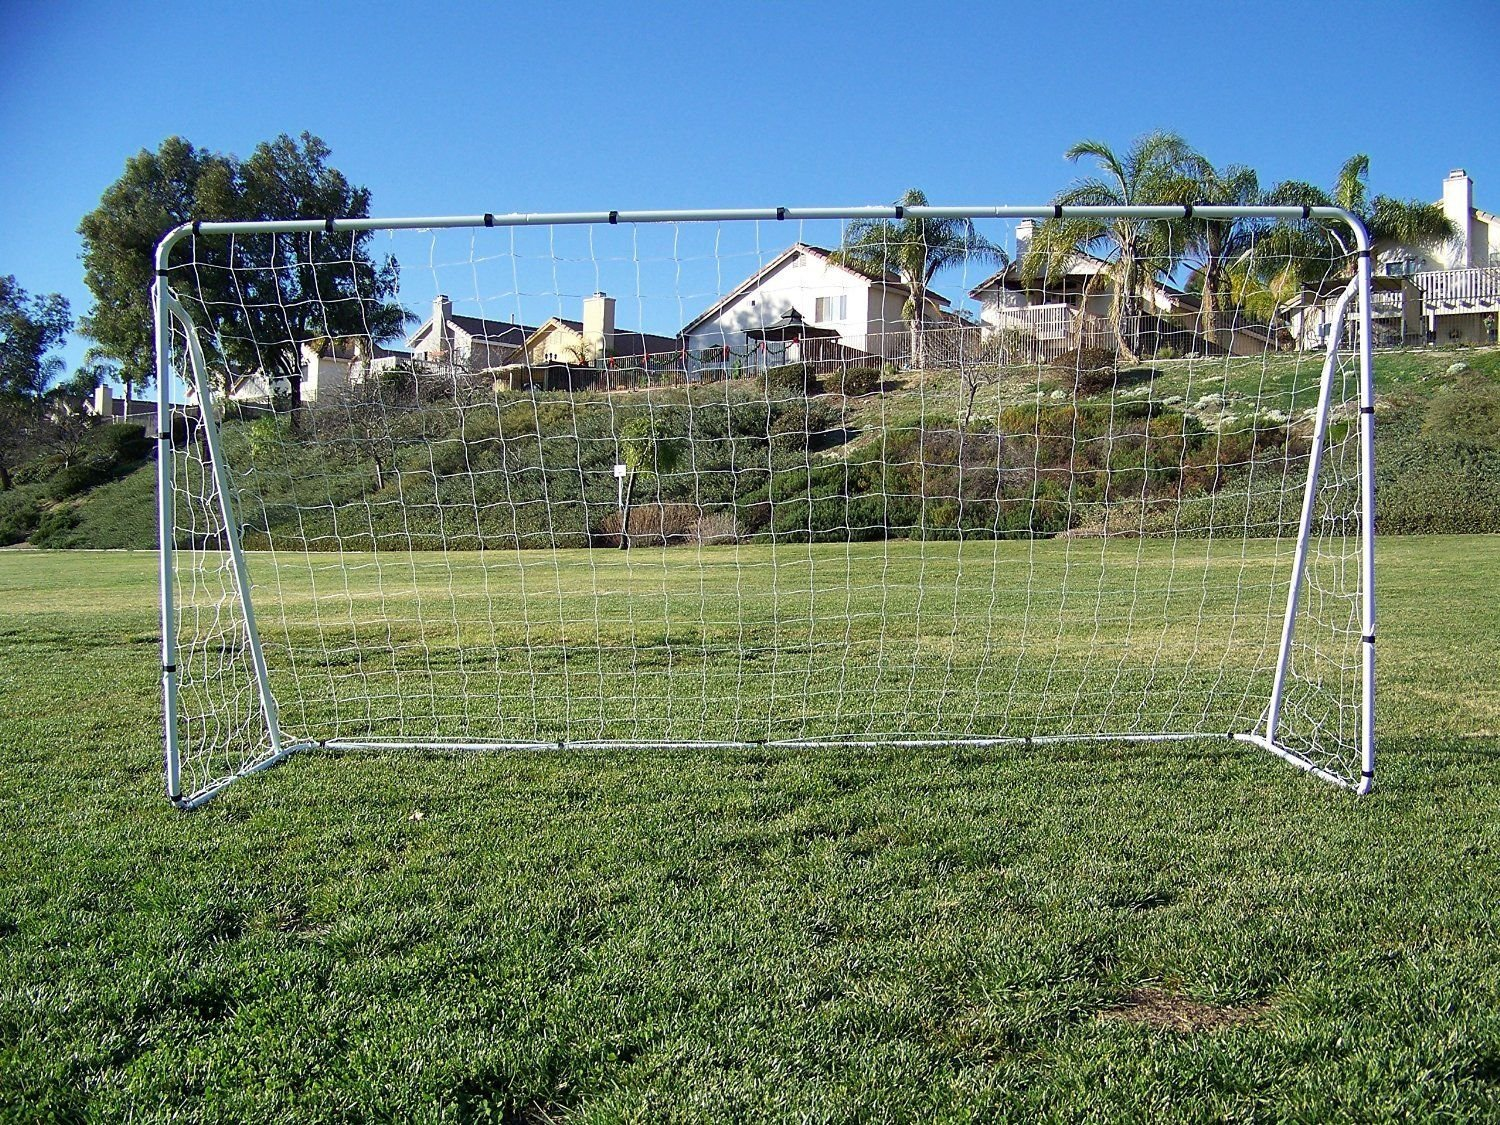 Vallerta 12 x 6 Ft. White Powder Coated Galvanized Steel Soccer Goal w/Net. 12x6 Foot AYSO Regulation Size Portable Training Aid. Ultimate Backyard Goal, All Weather, One Year Warranty. New